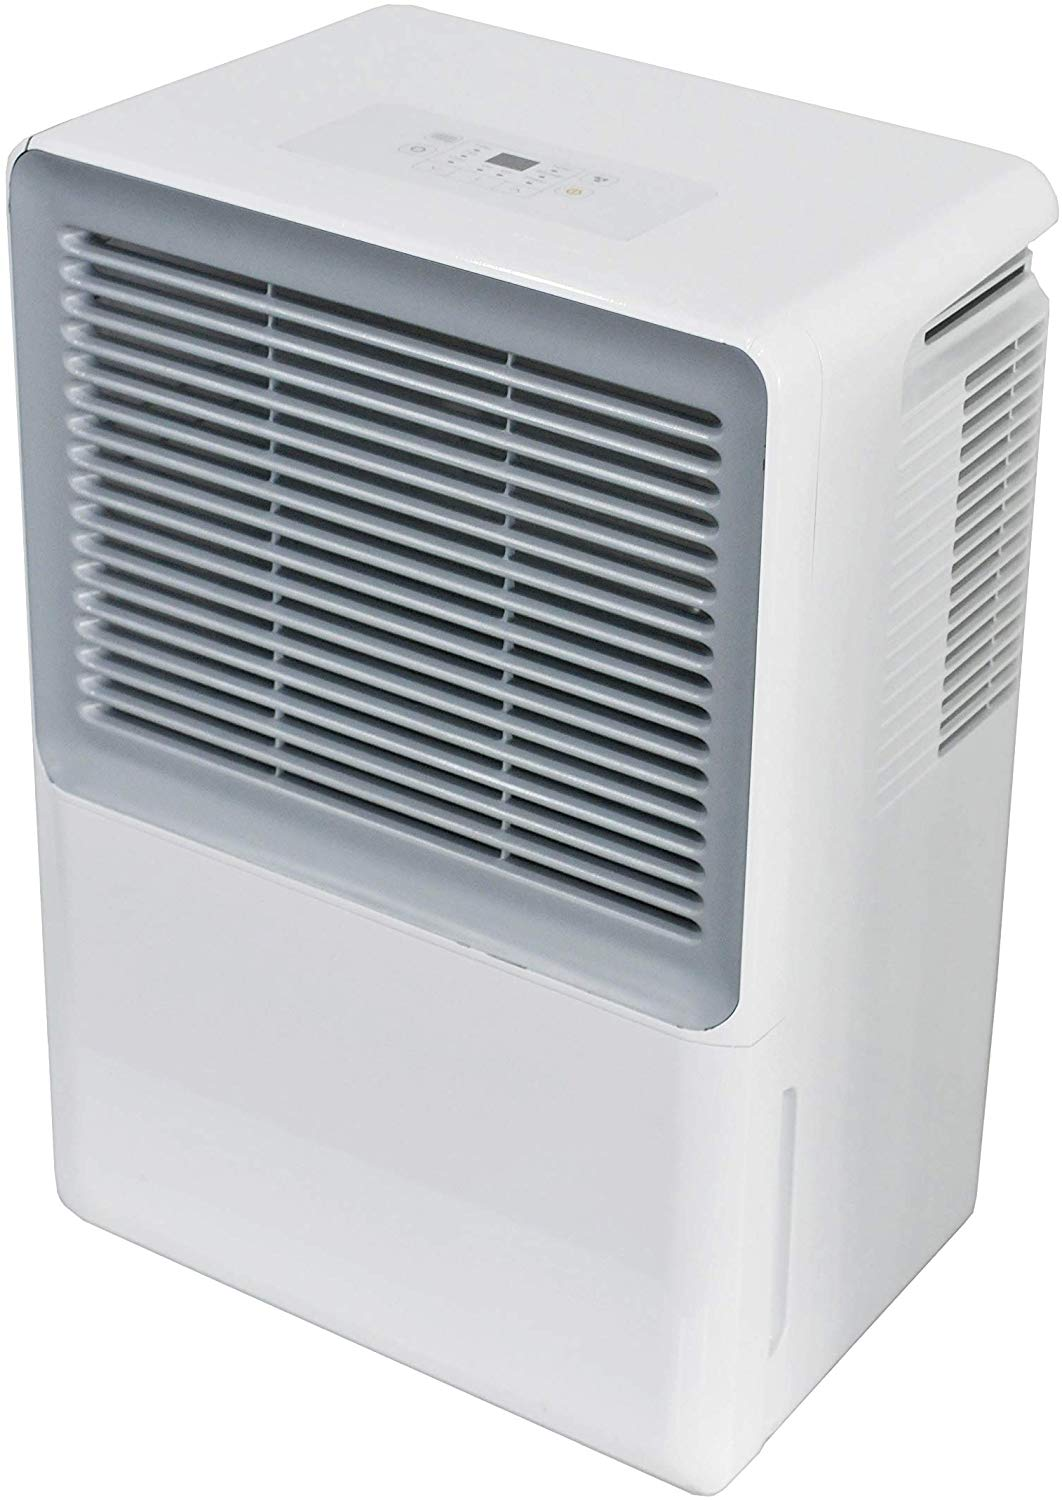 SPT SD-52PE Energy-Star Dehumidifier